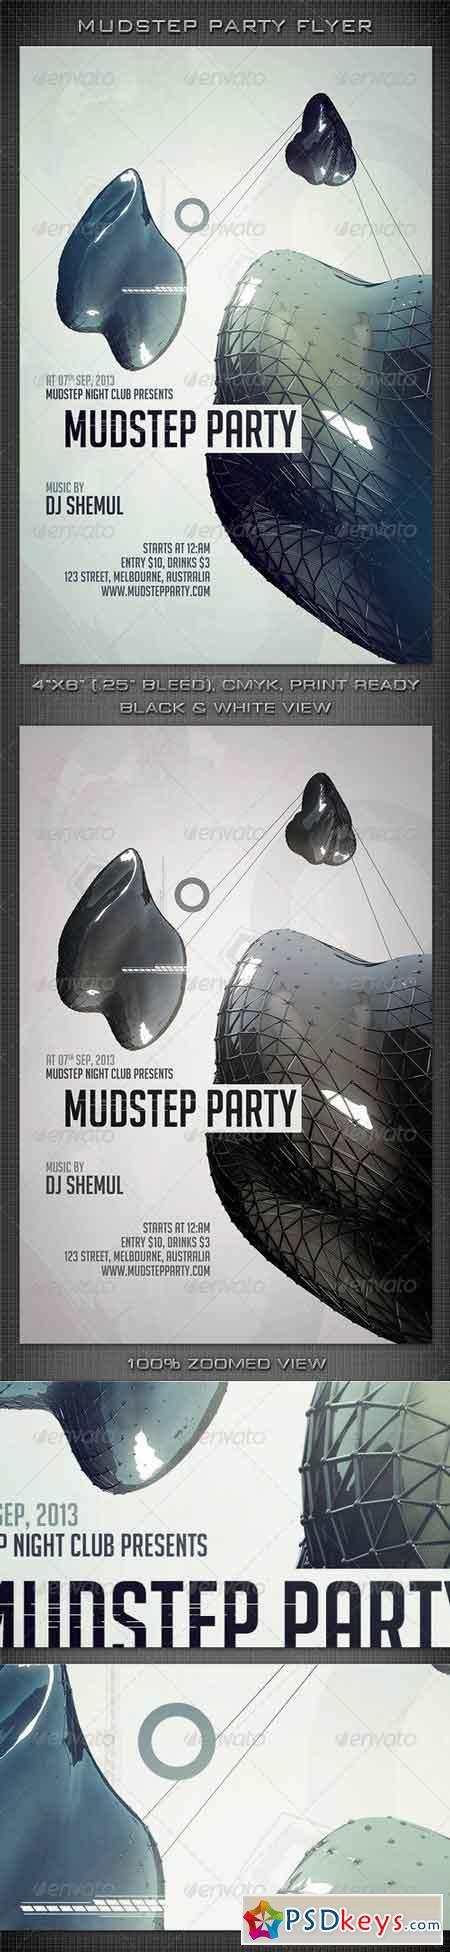 Mudstep Party Flyer 5500982